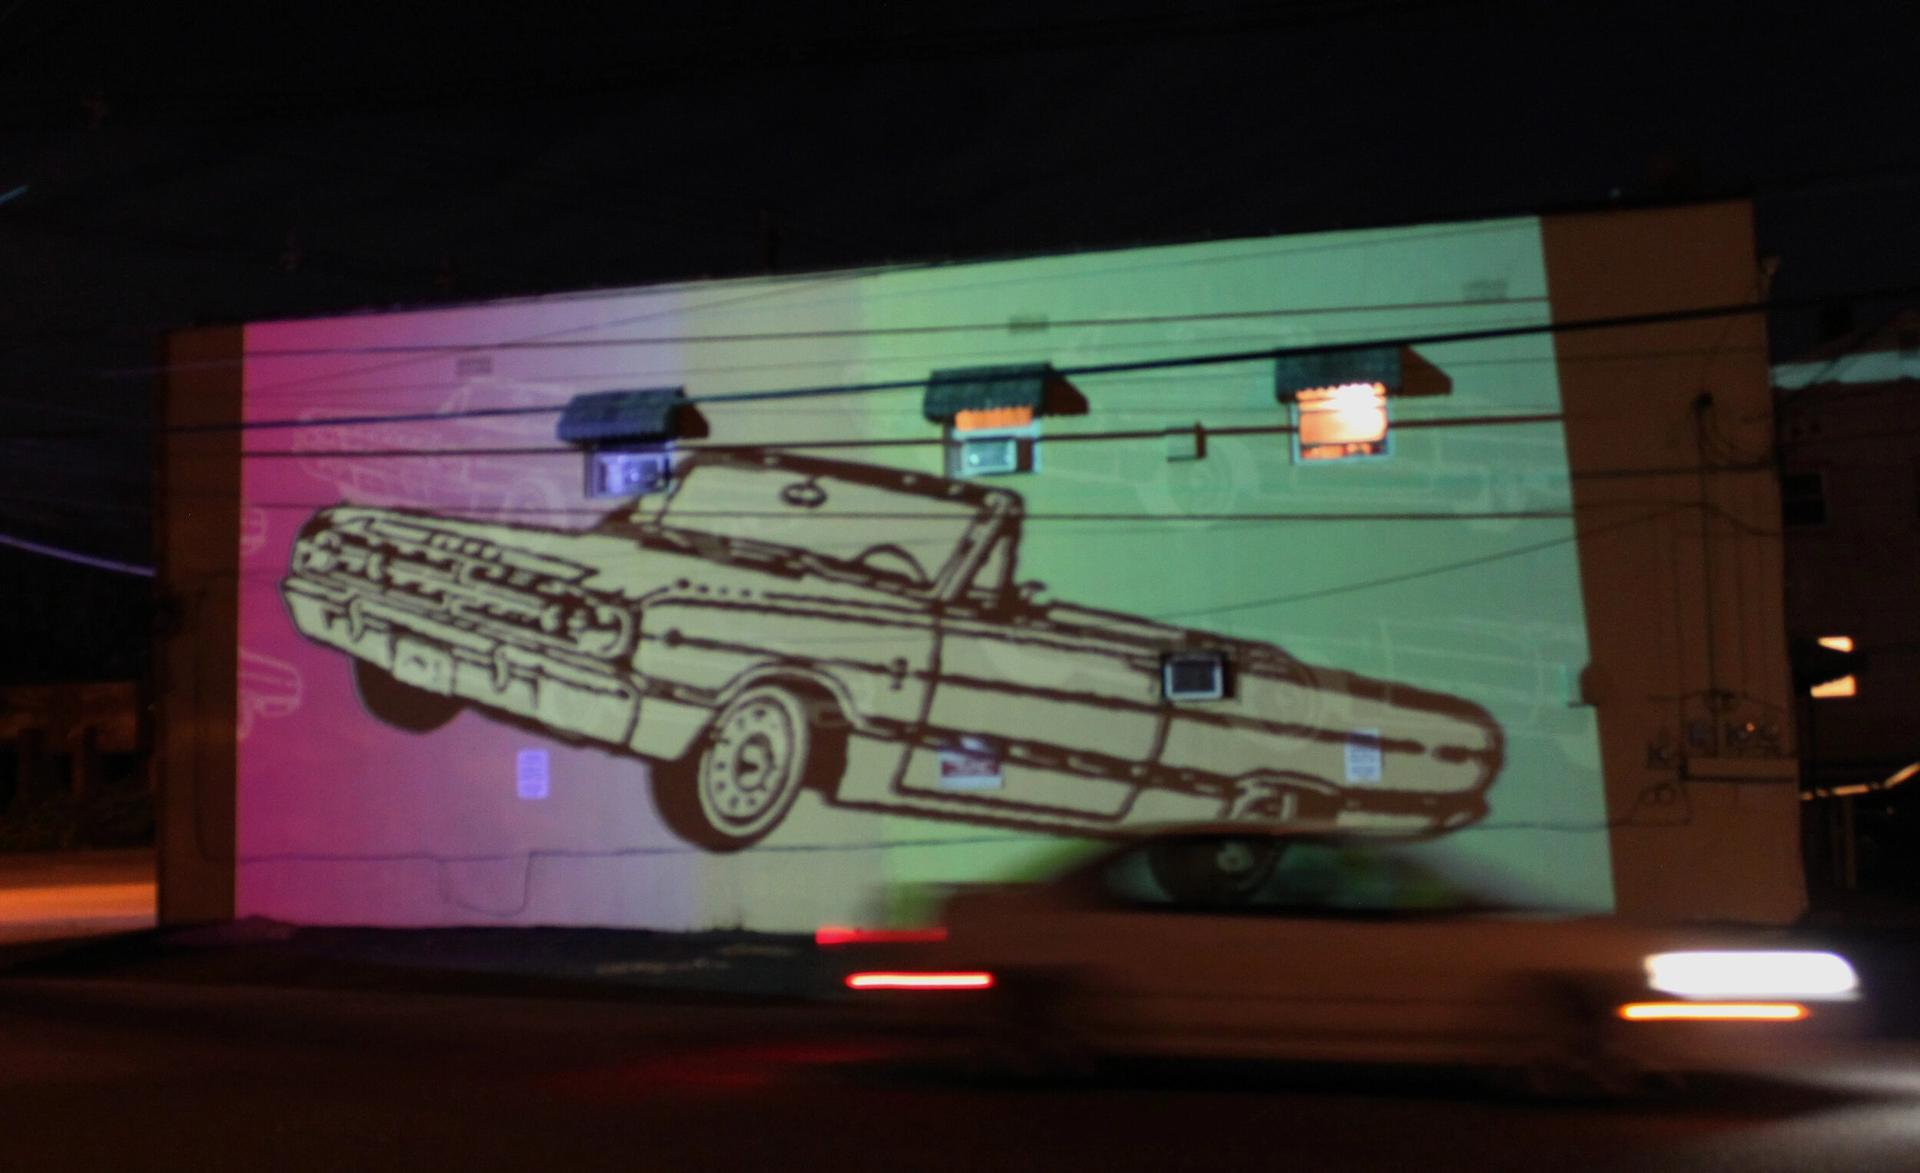 Gardenship's Art House Drive-In series included Pandemic Projections, an evening of video art and art videos curated by Wavelength